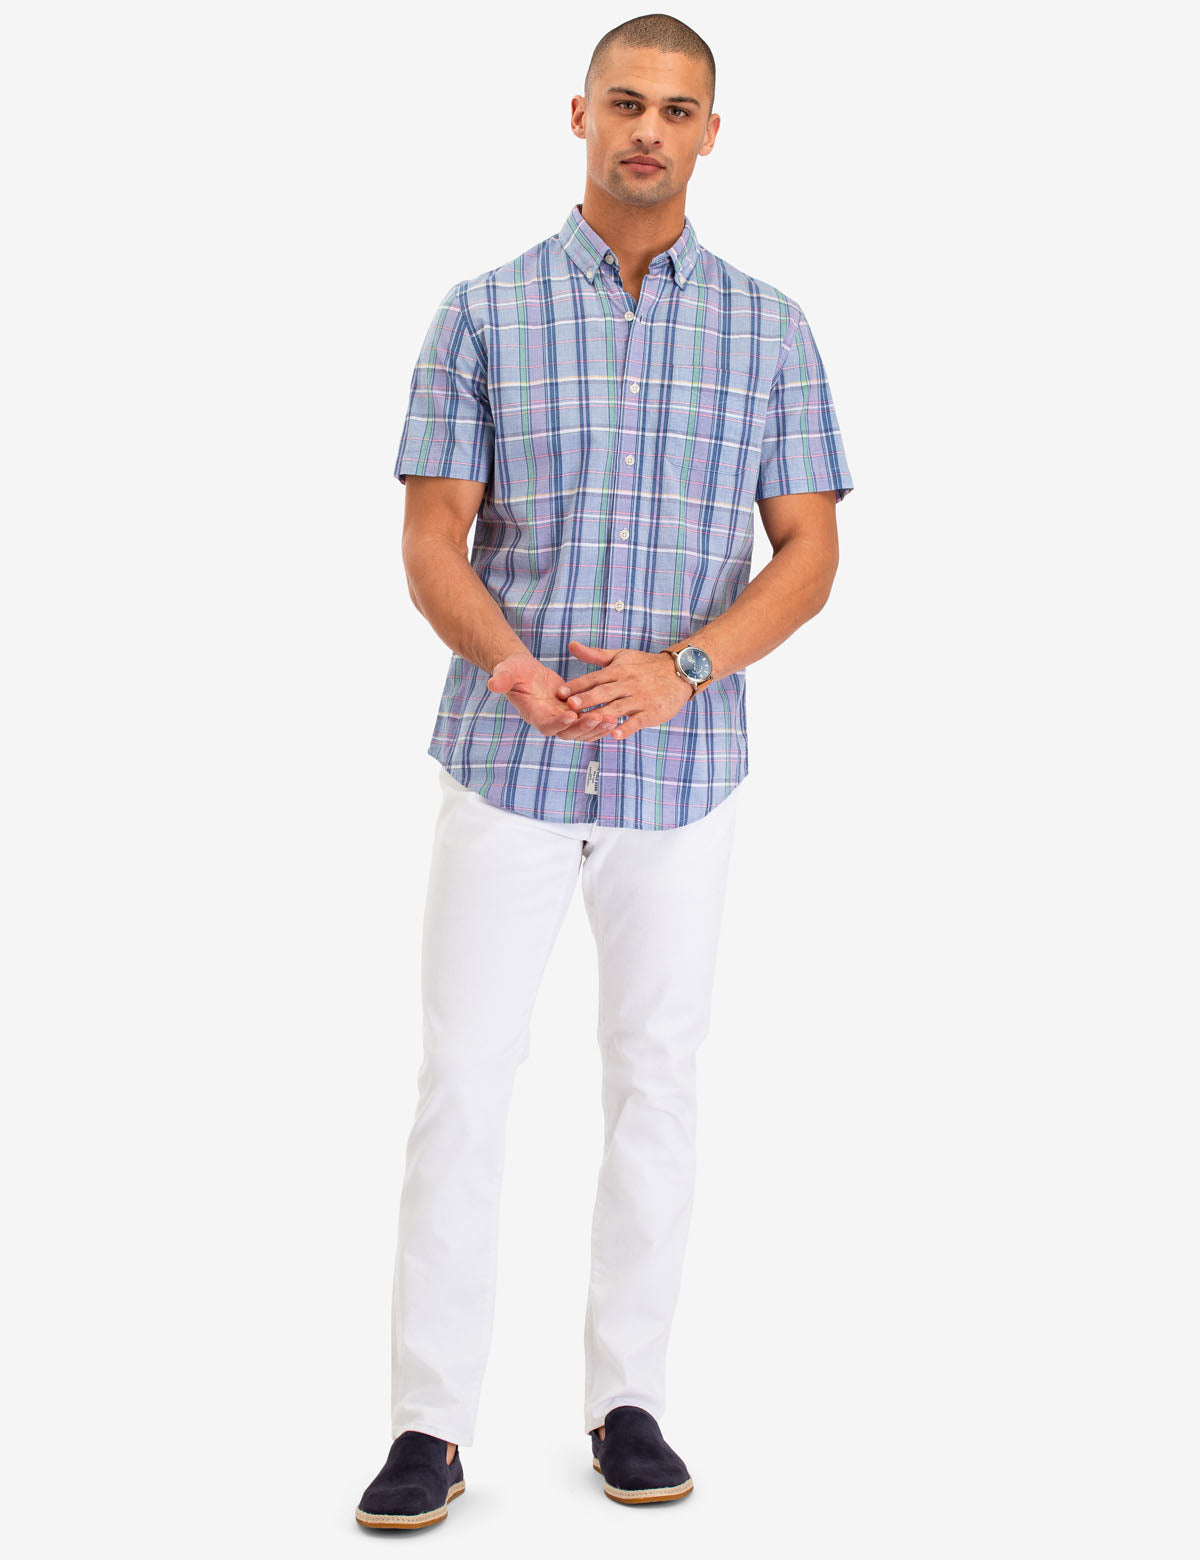 PLAID POPLIN SHORT SLEEVE SHIRT - U.S. Polo Assn.